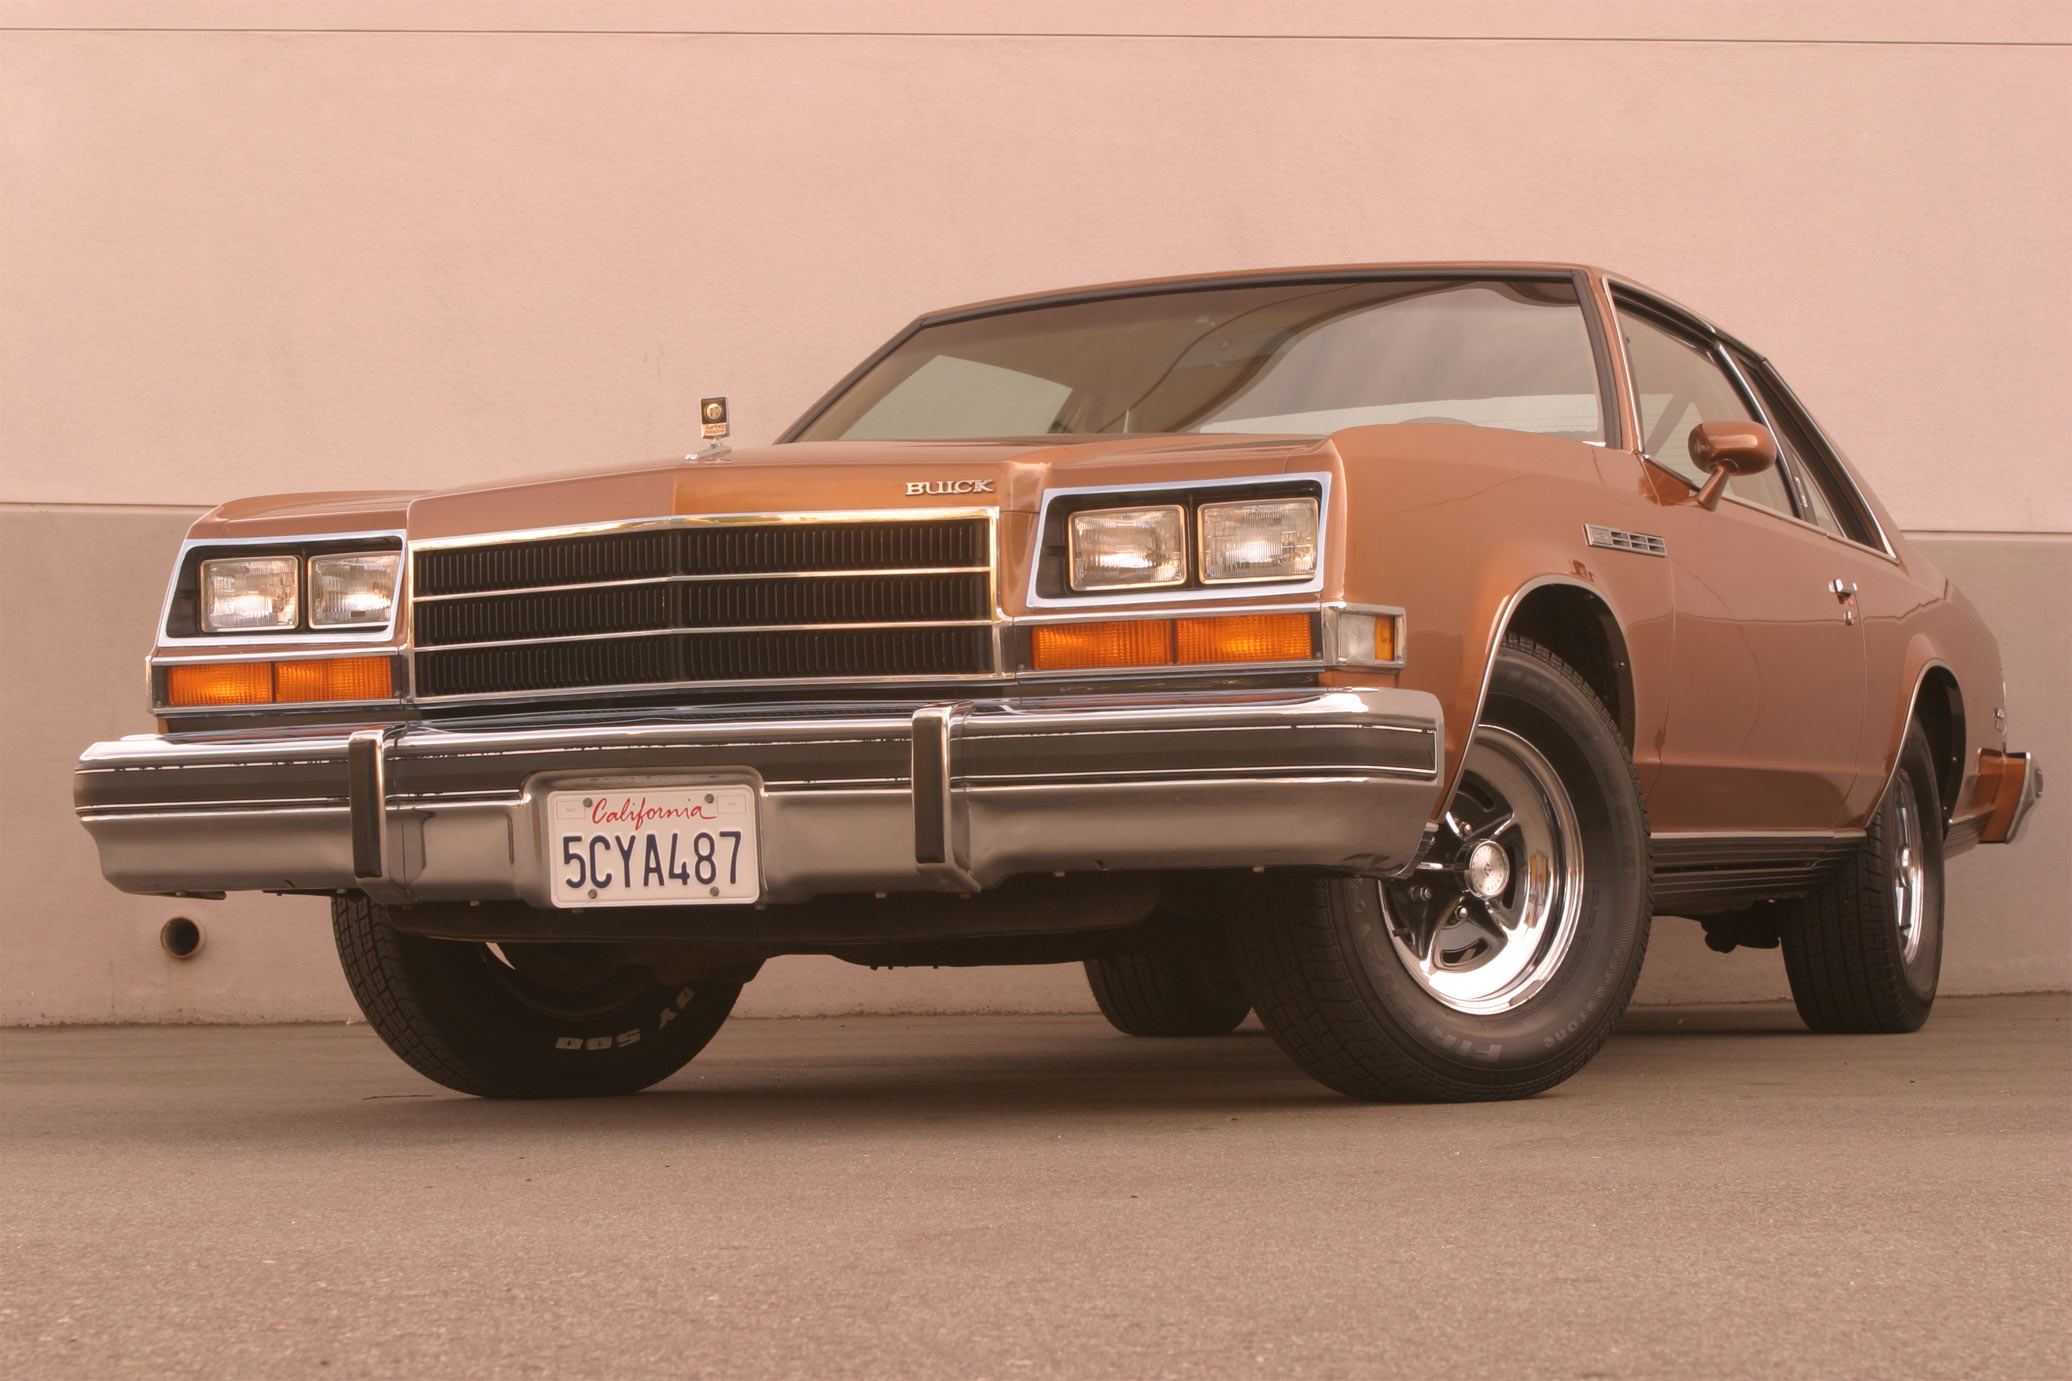 IMCDb.org: 1979 Buick LeSabre in